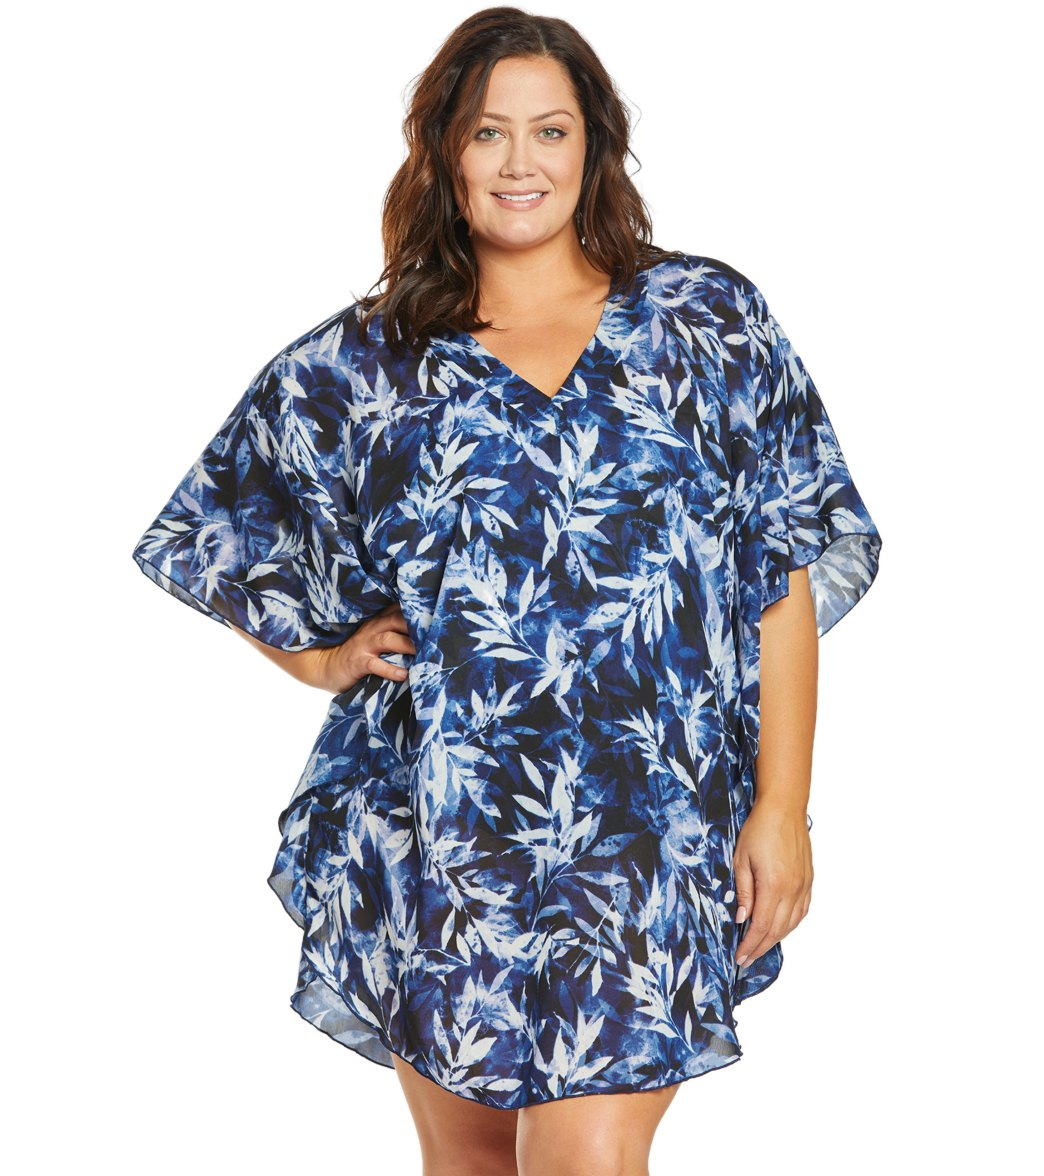 efb40f1a70 Maxine Plus Size In The Navy Caftan Cover Up at SwimOutlet.com